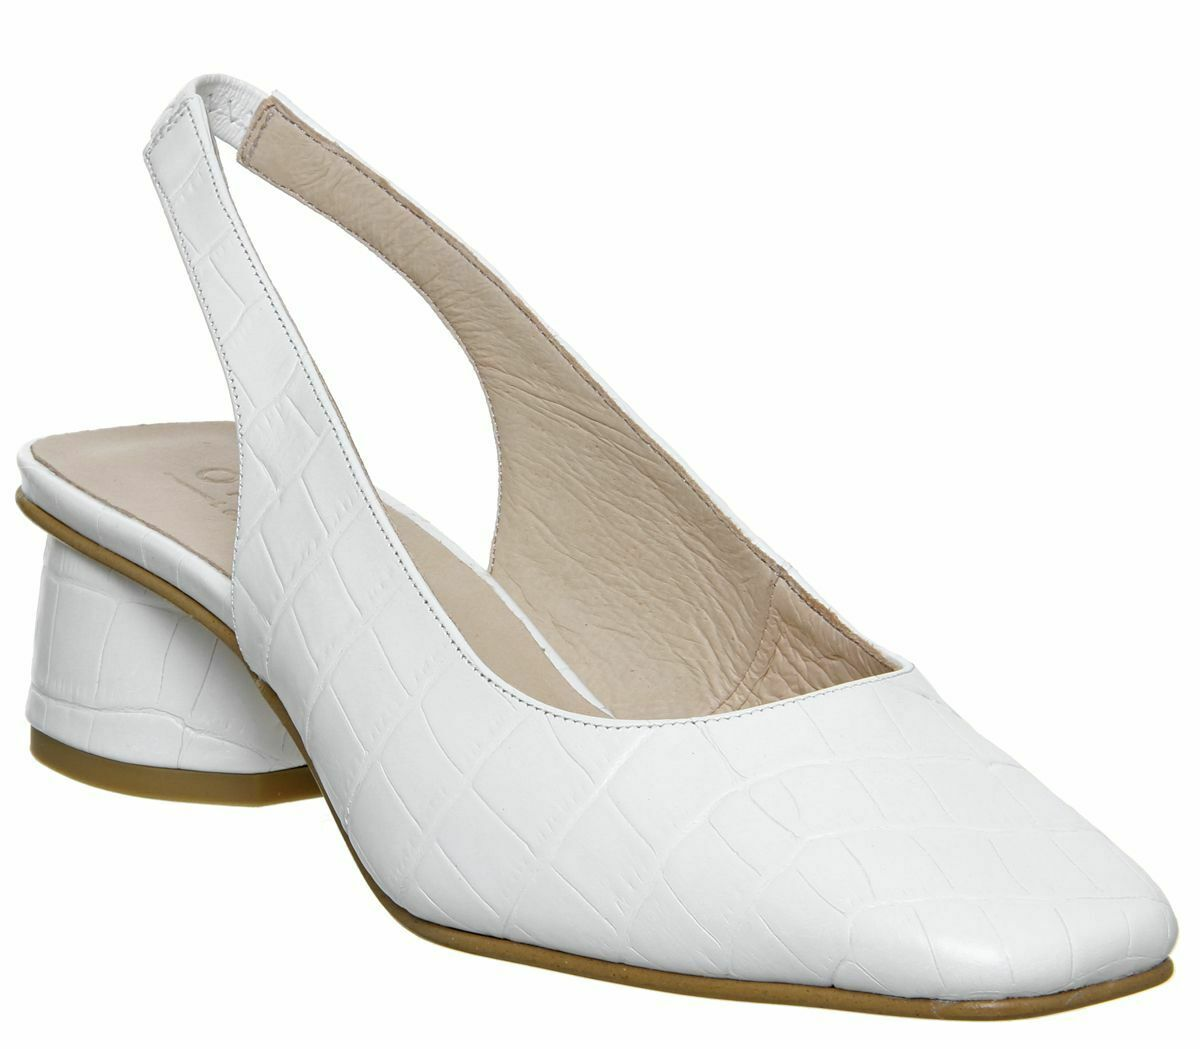 donna Office Manners Slingback Flarosso Court Heels Patent bianca Croc  Leather Hee  prezzi equi